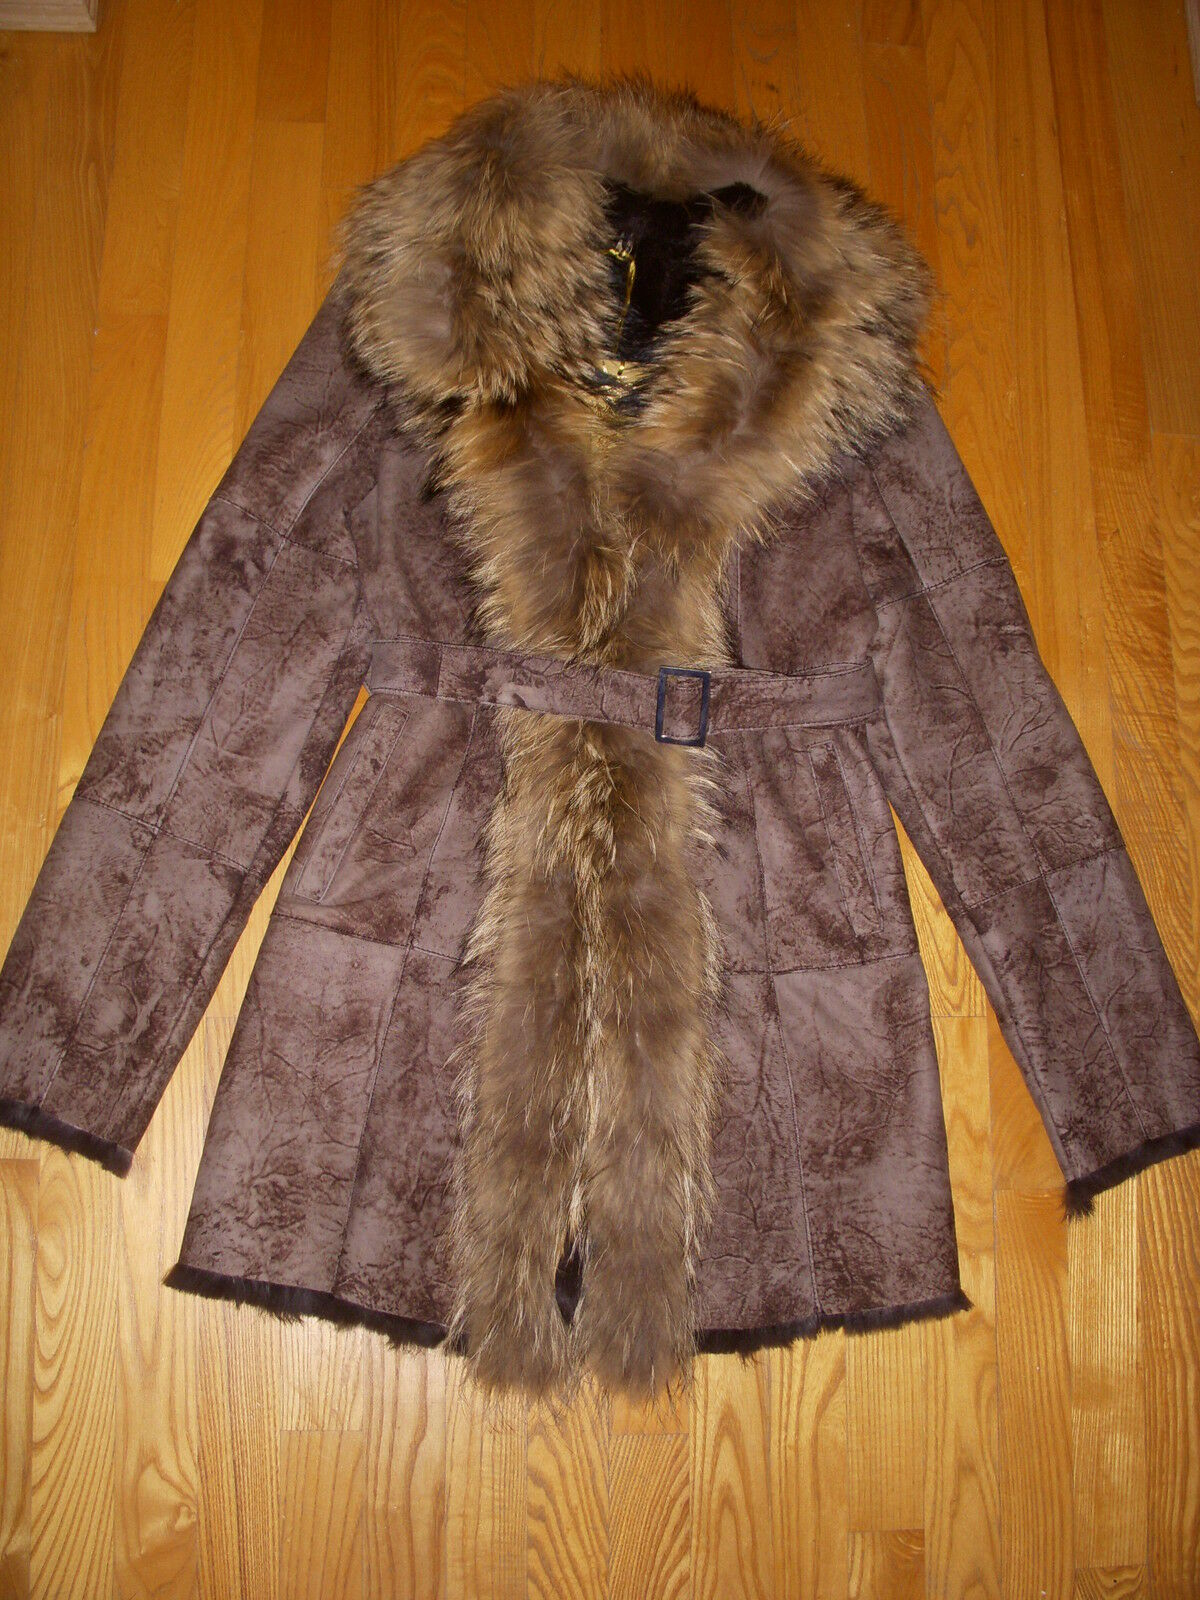 K-YEN Shearling Fur Leather Coat Racoon Trim made in France Size L BNWT